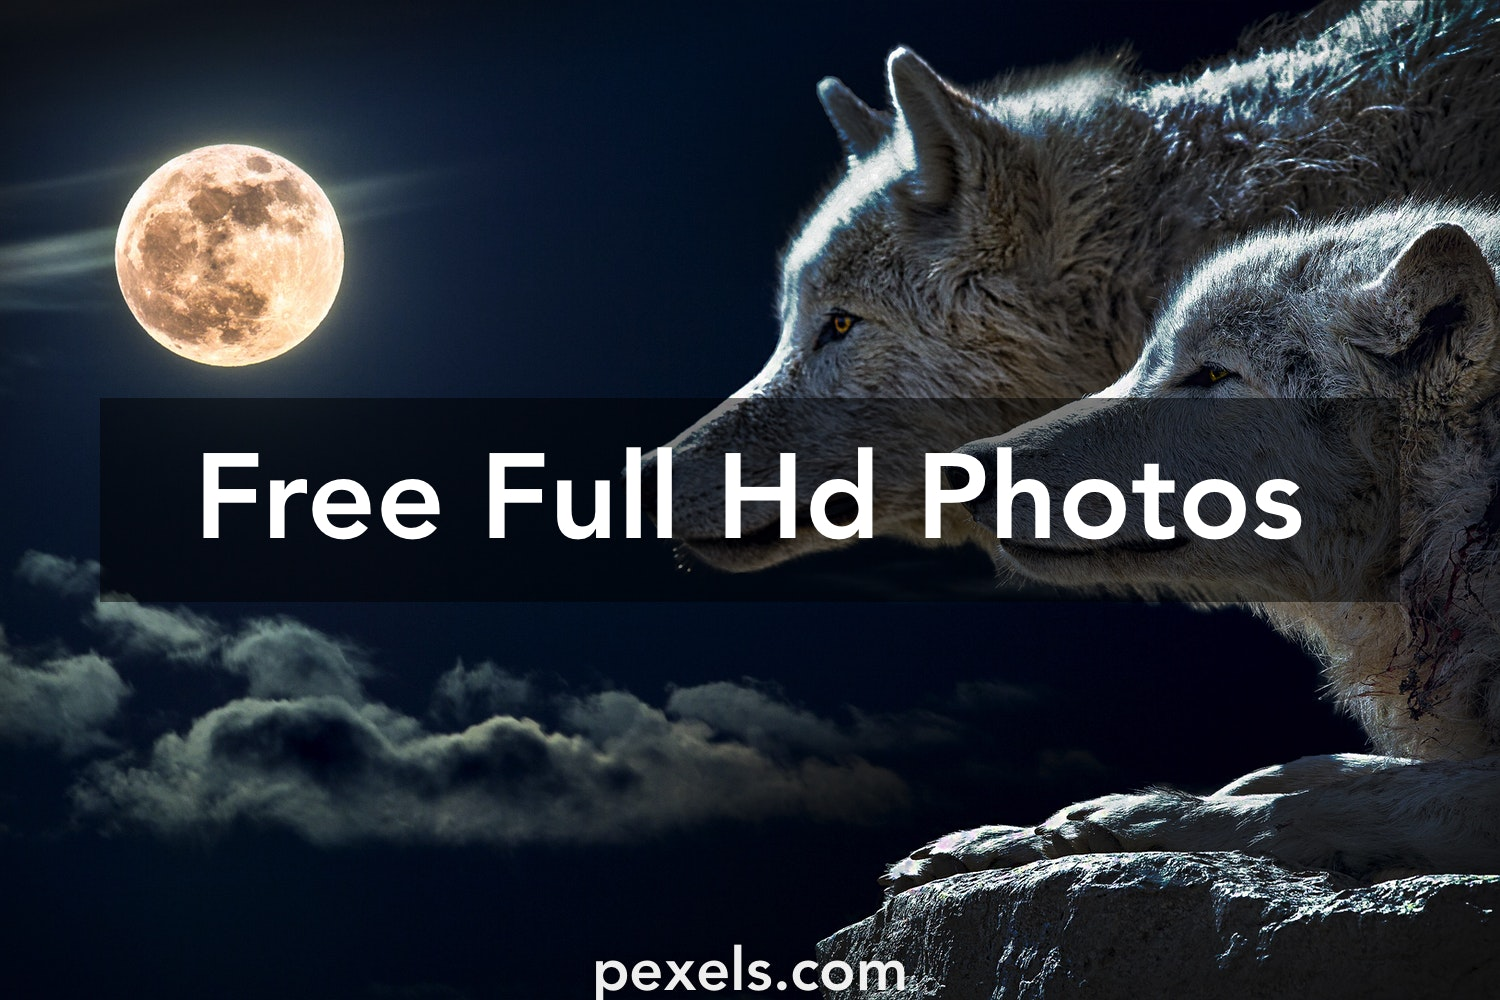 1000 Engaging Full Hd Photos Pexels Free Stock Photos